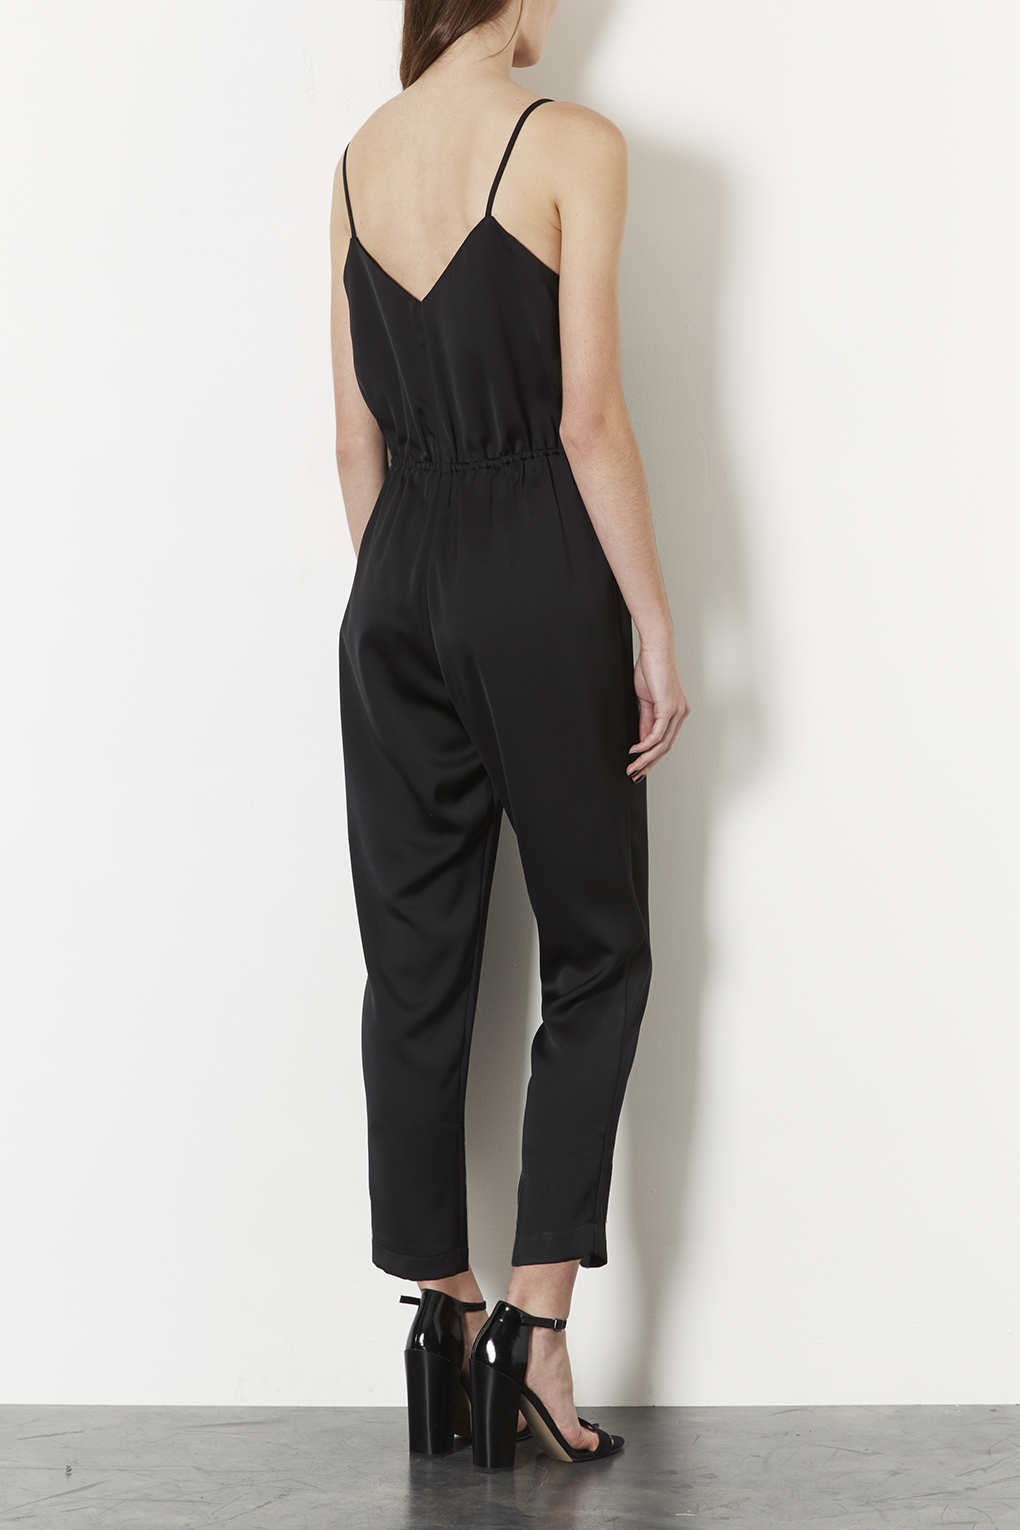 74171f3aa6cc Lyst - TOPSHOP Petite Satin Strappy Jumpsuit in Black